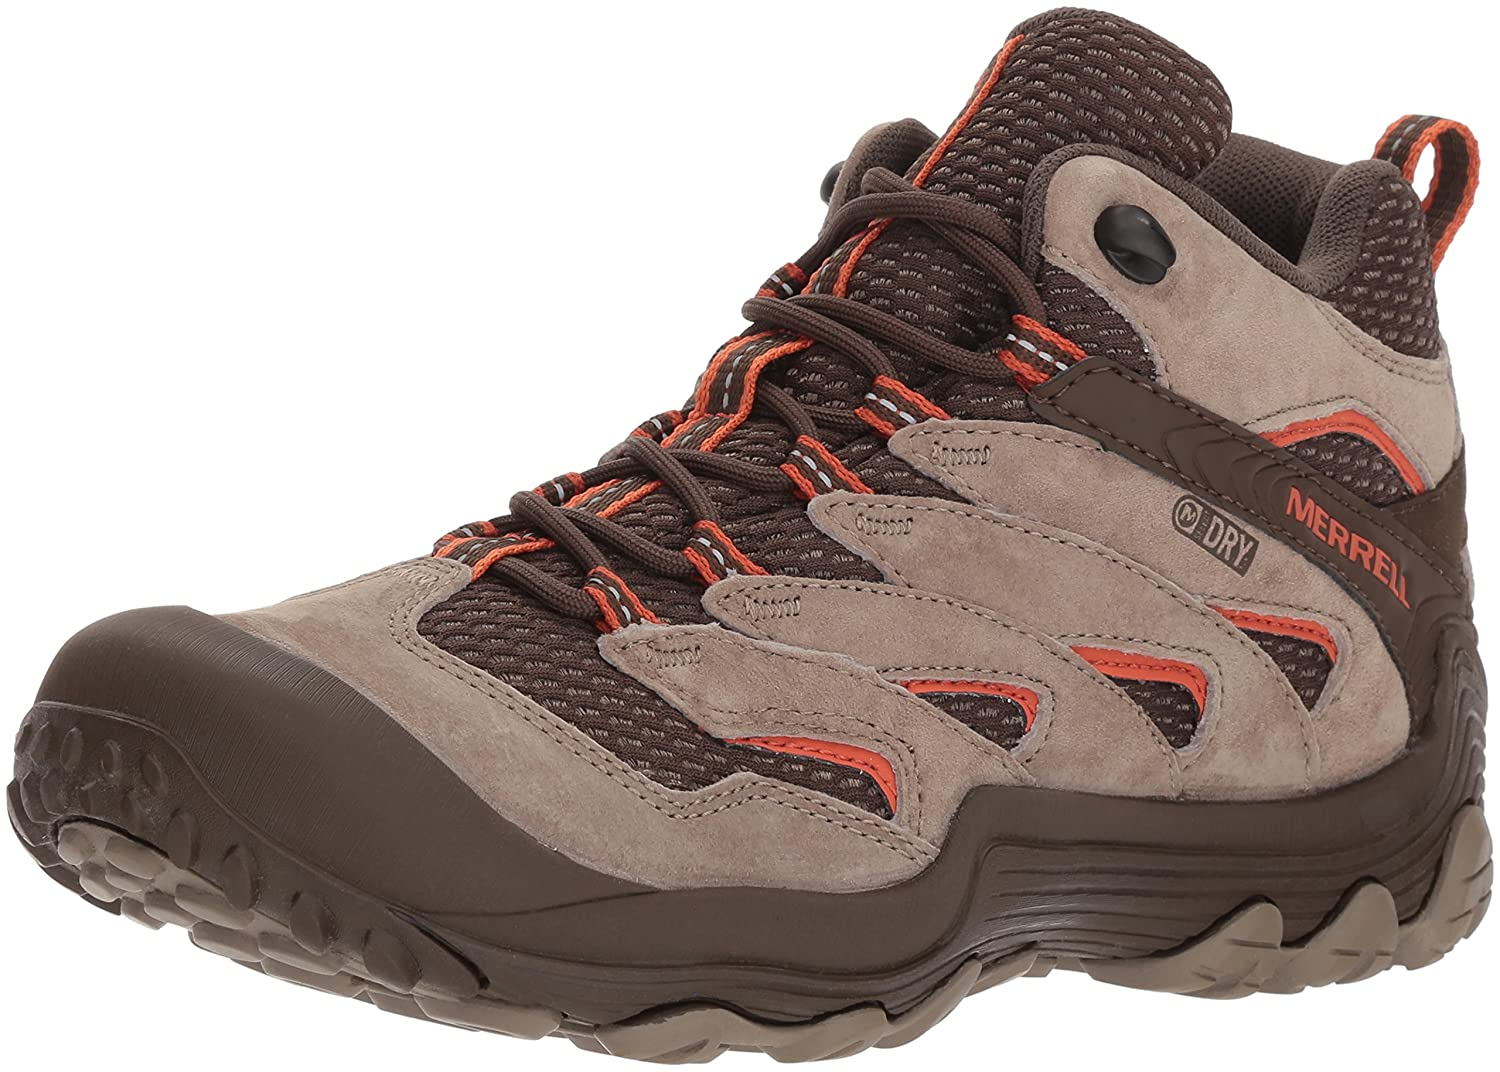 Merrell Women's Chameleon 7 Limit Mid Waterproof Hiking Boot B0728C1LNJ 11 B(M) US|Brindle